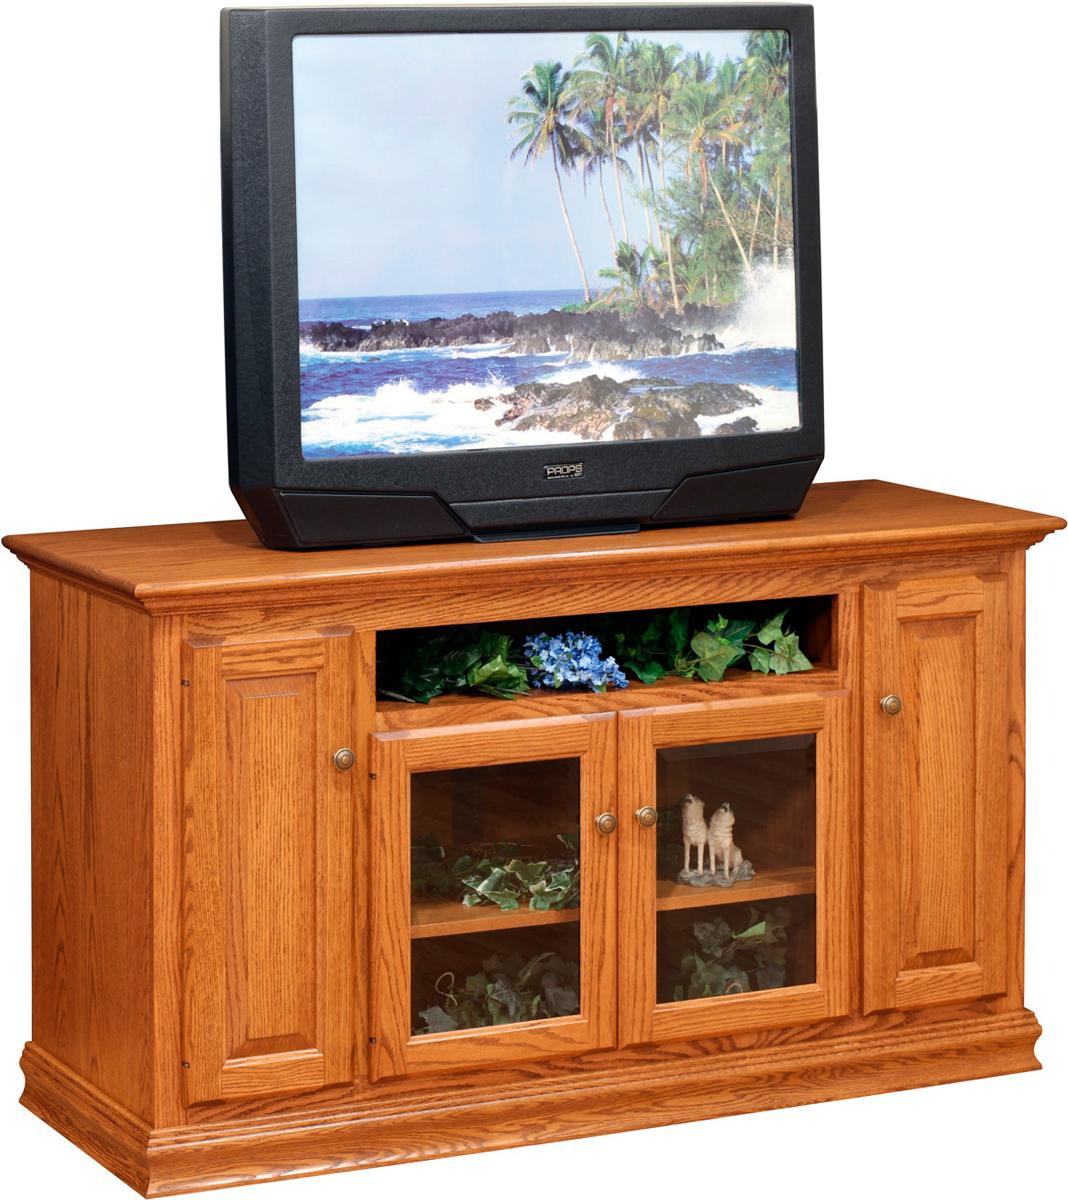 Traditional TV Stand - wide